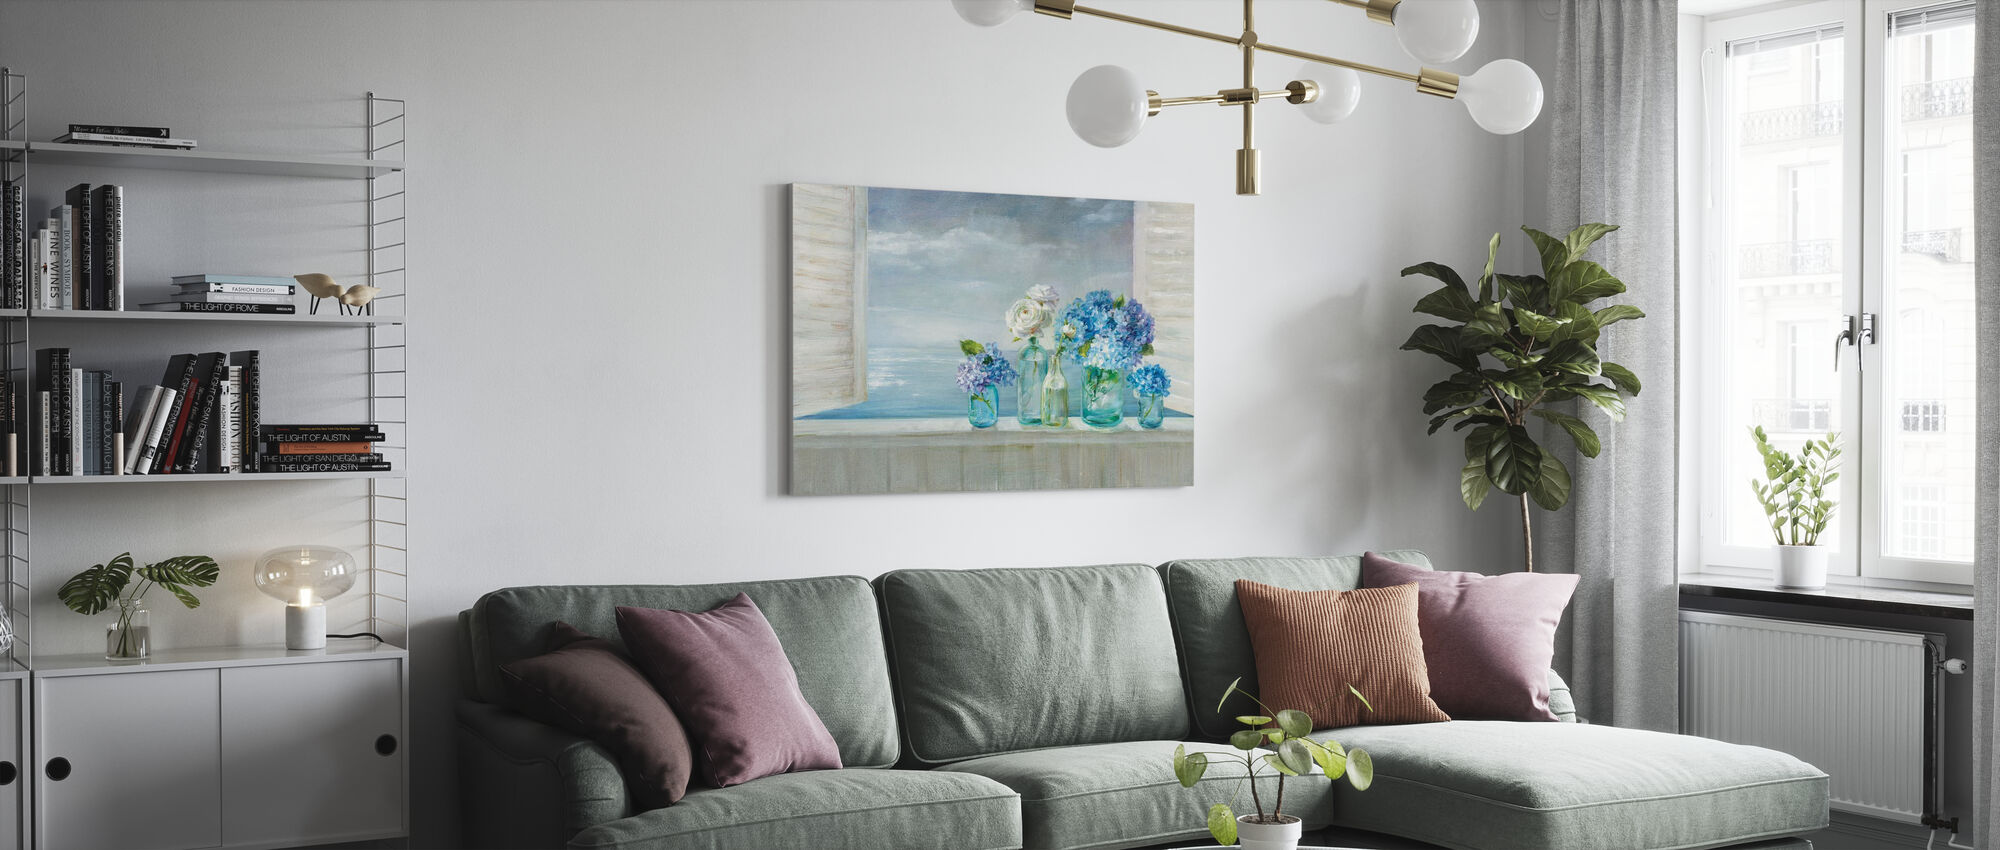 A Beautiful Day at the Beach - Canvas print - Living Room